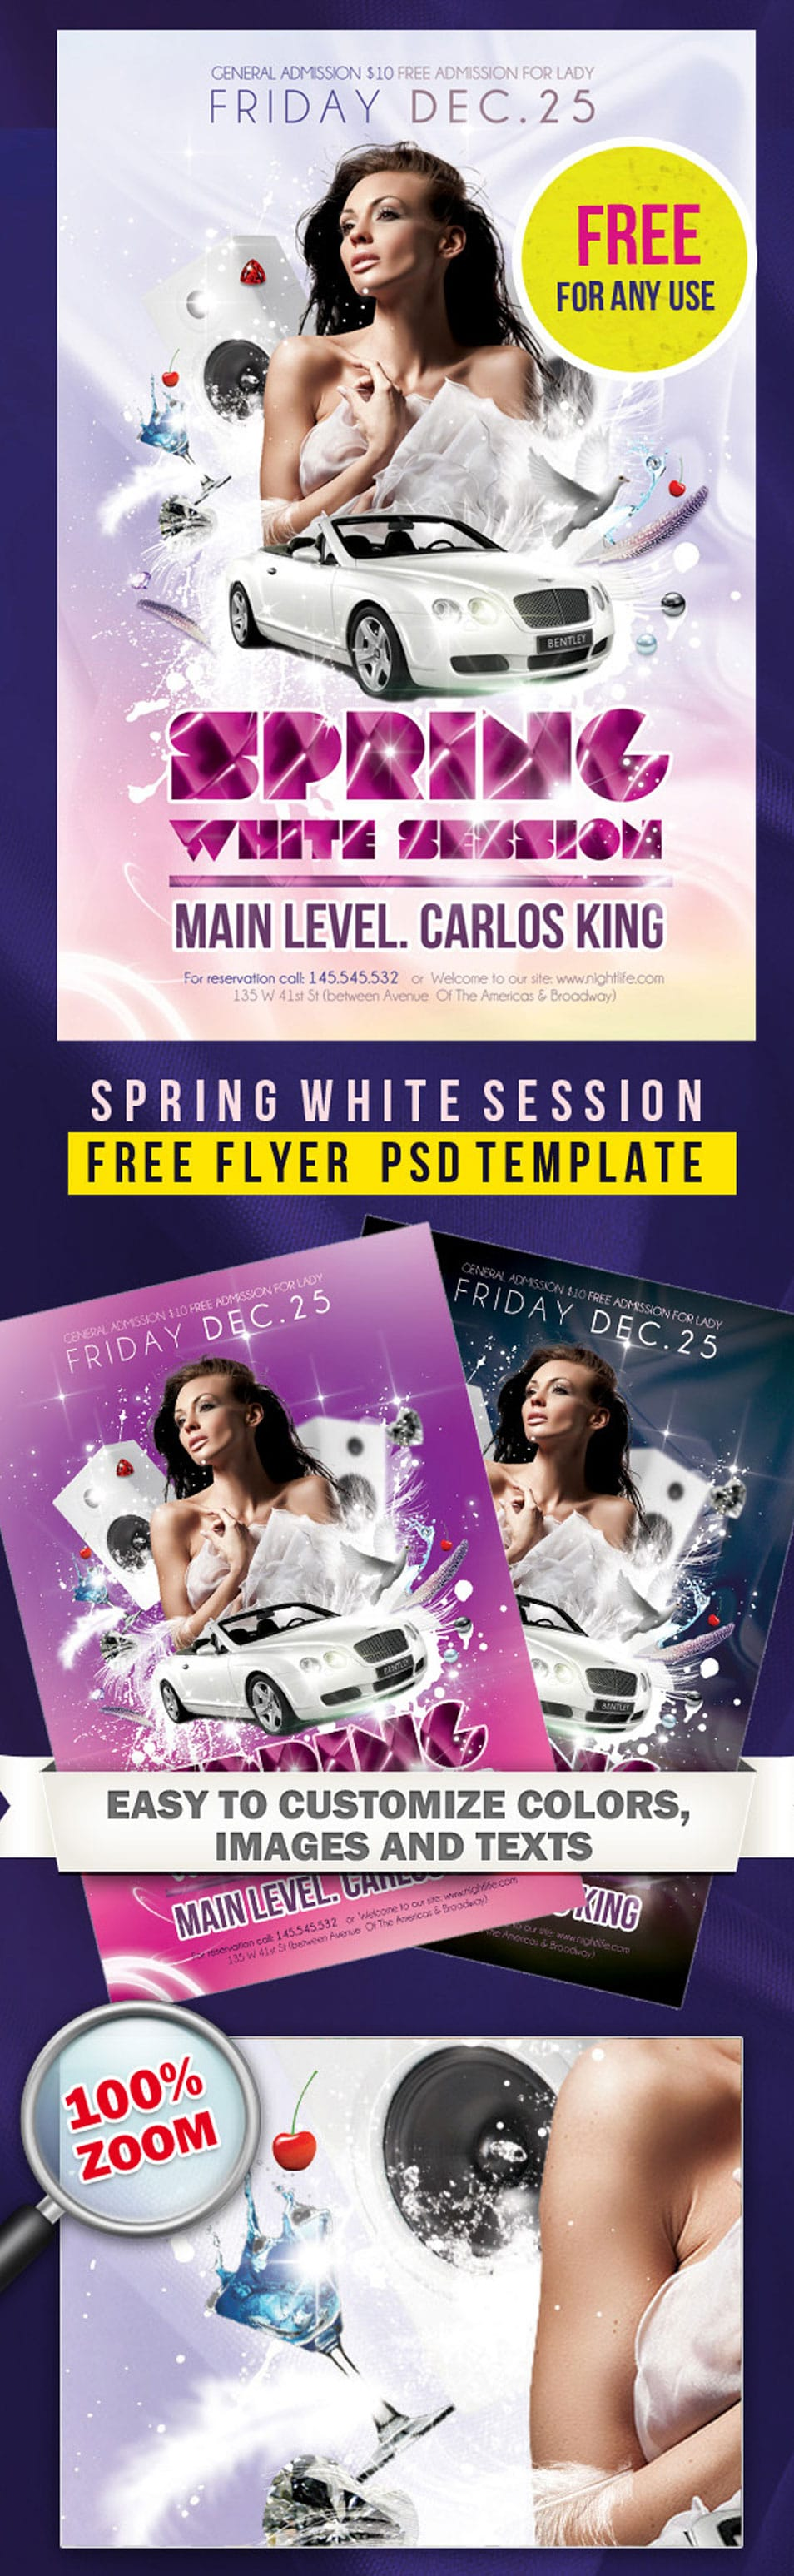 Free Party Flyer Poster PSD Template